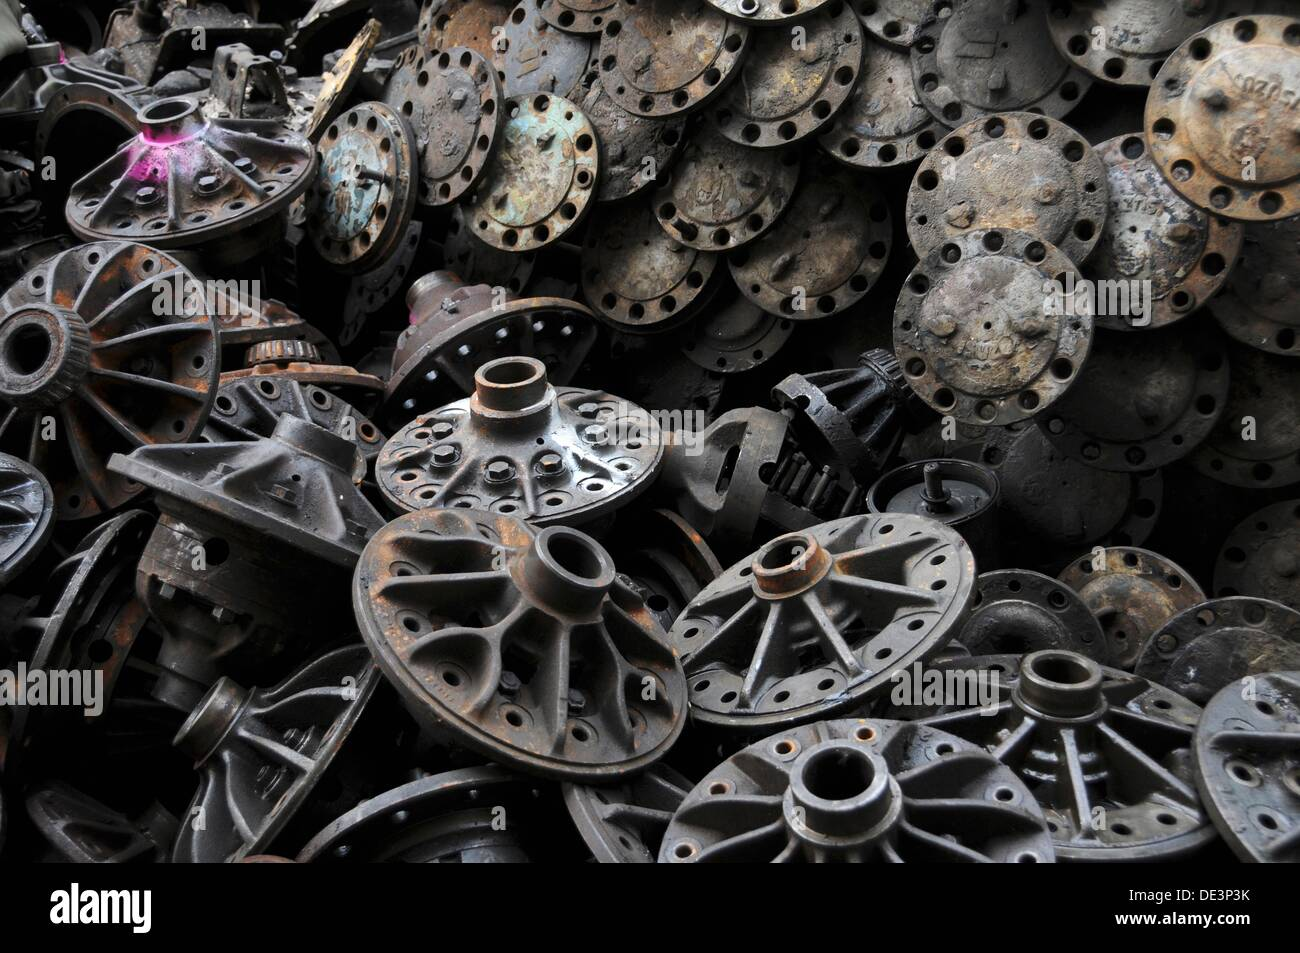 Used Auto Parts Stock Photos & Used Auto Parts Stock Images